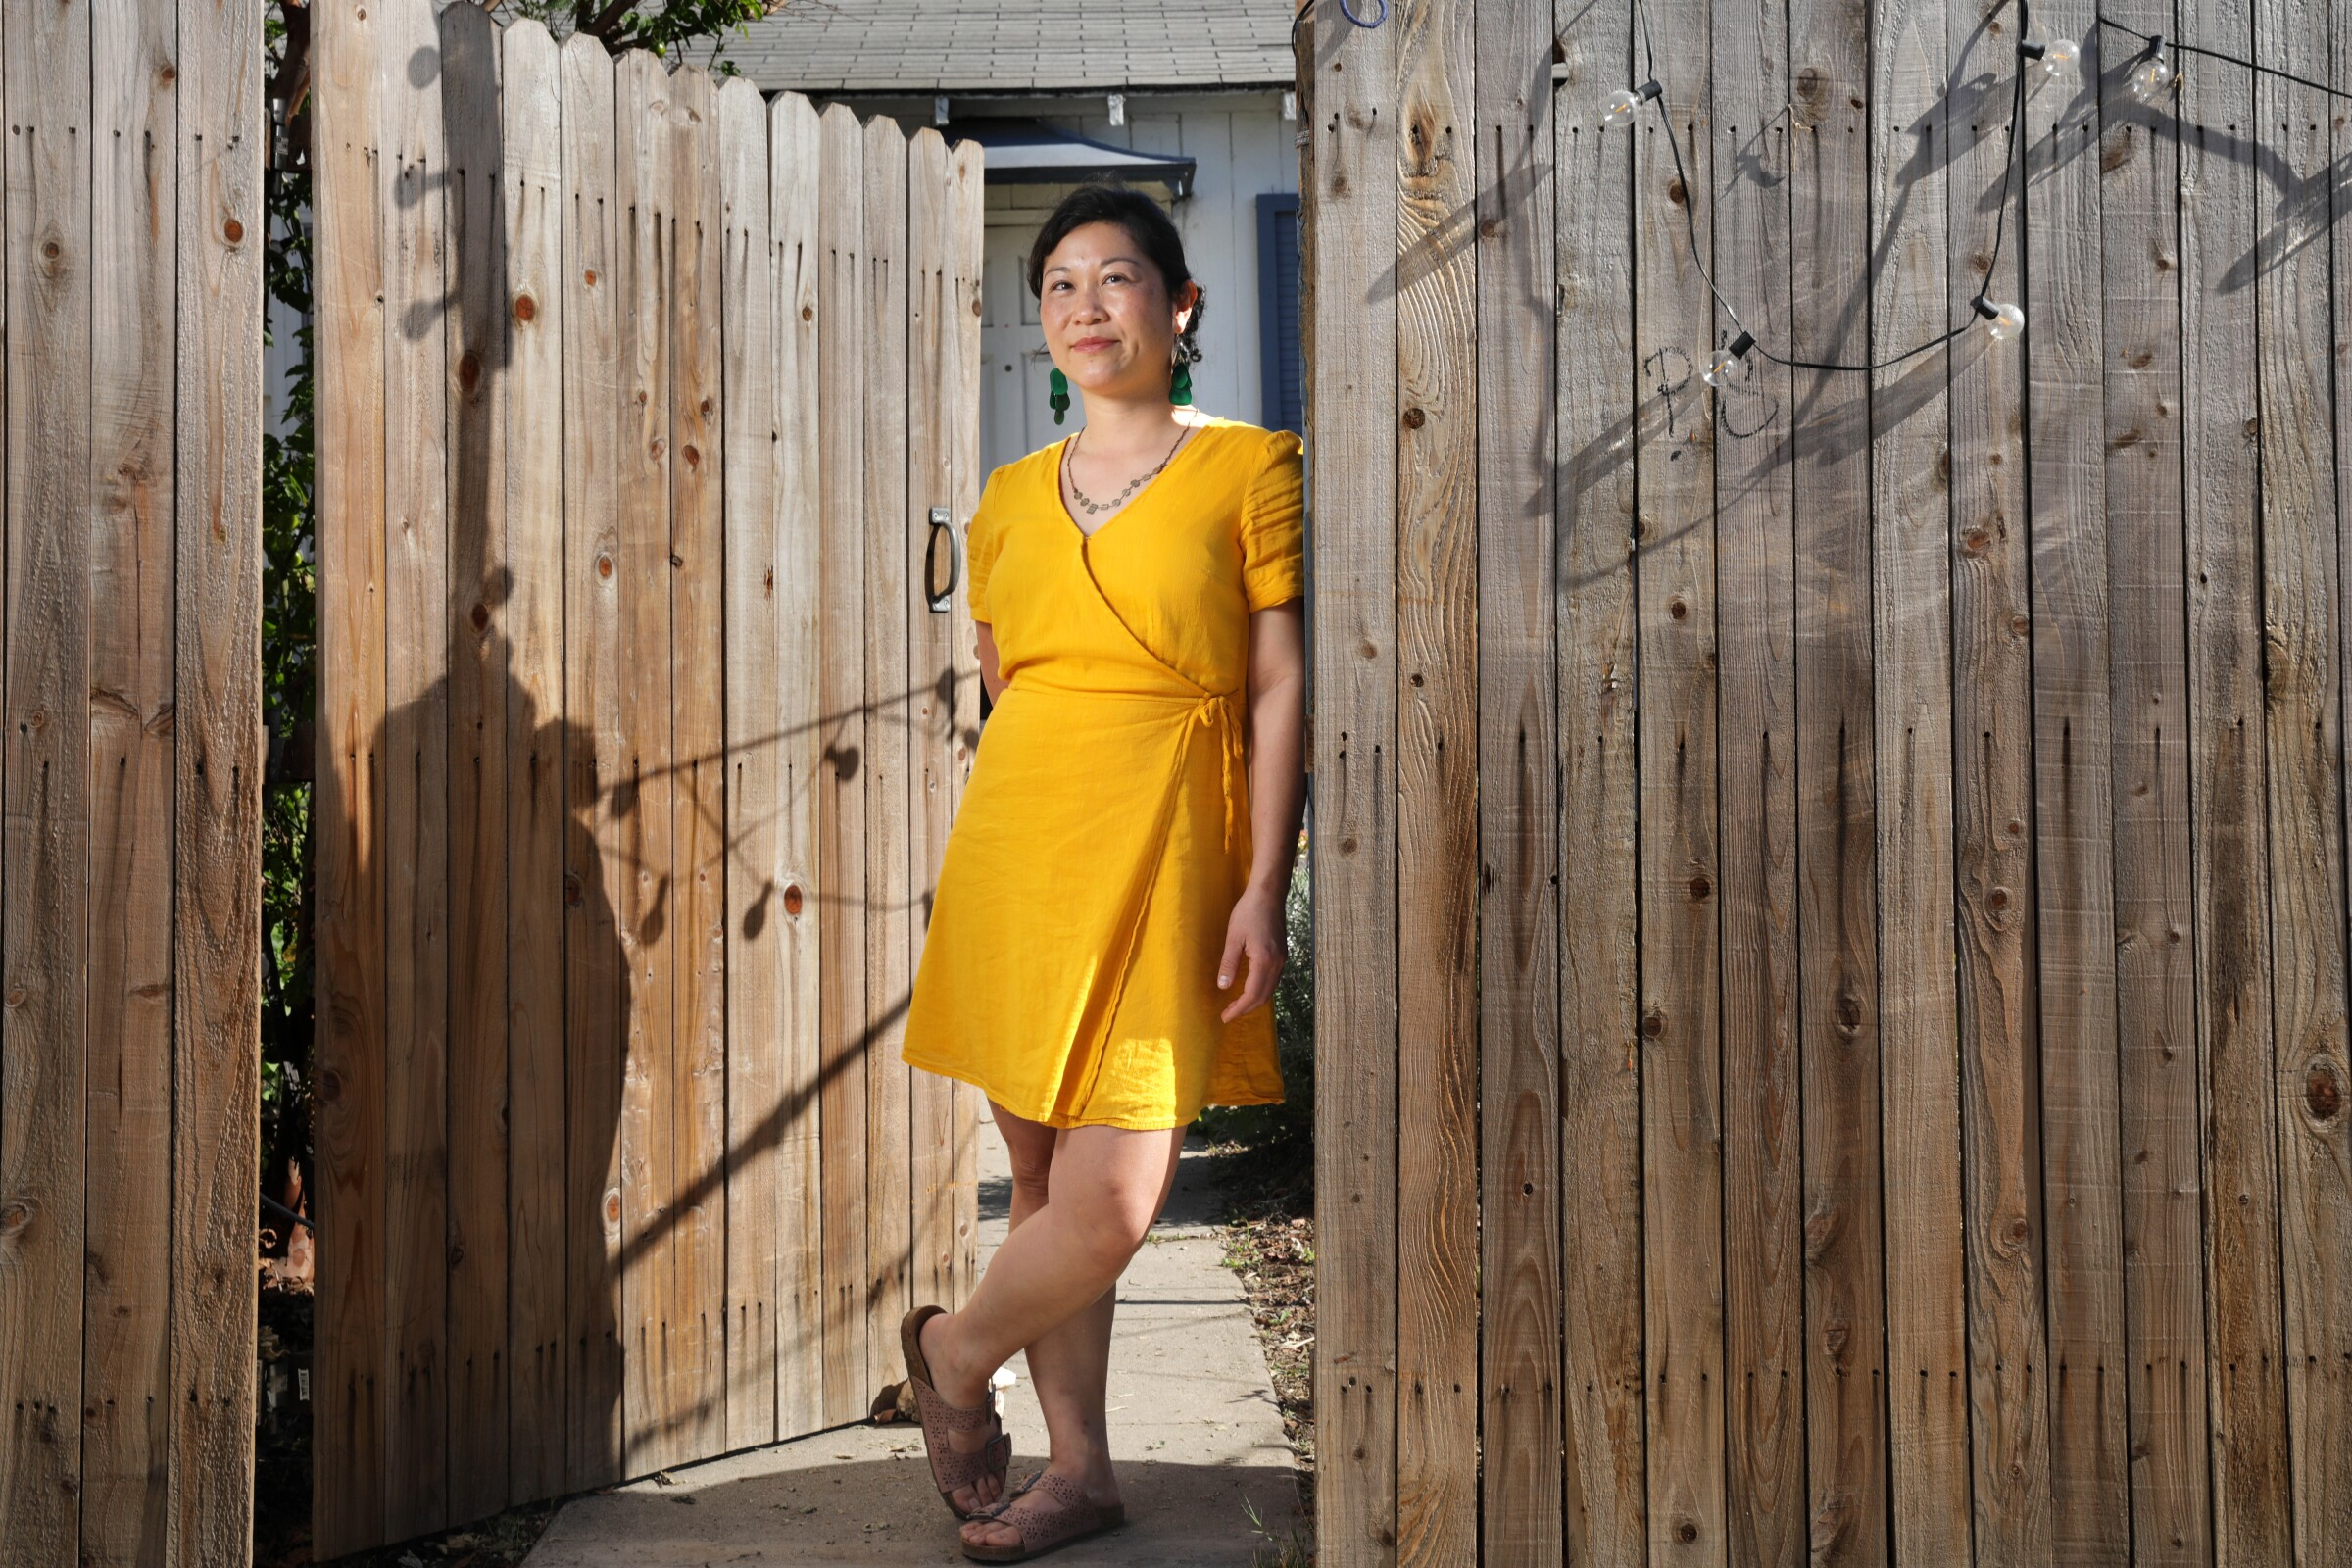 A woman leans against a wooden fence